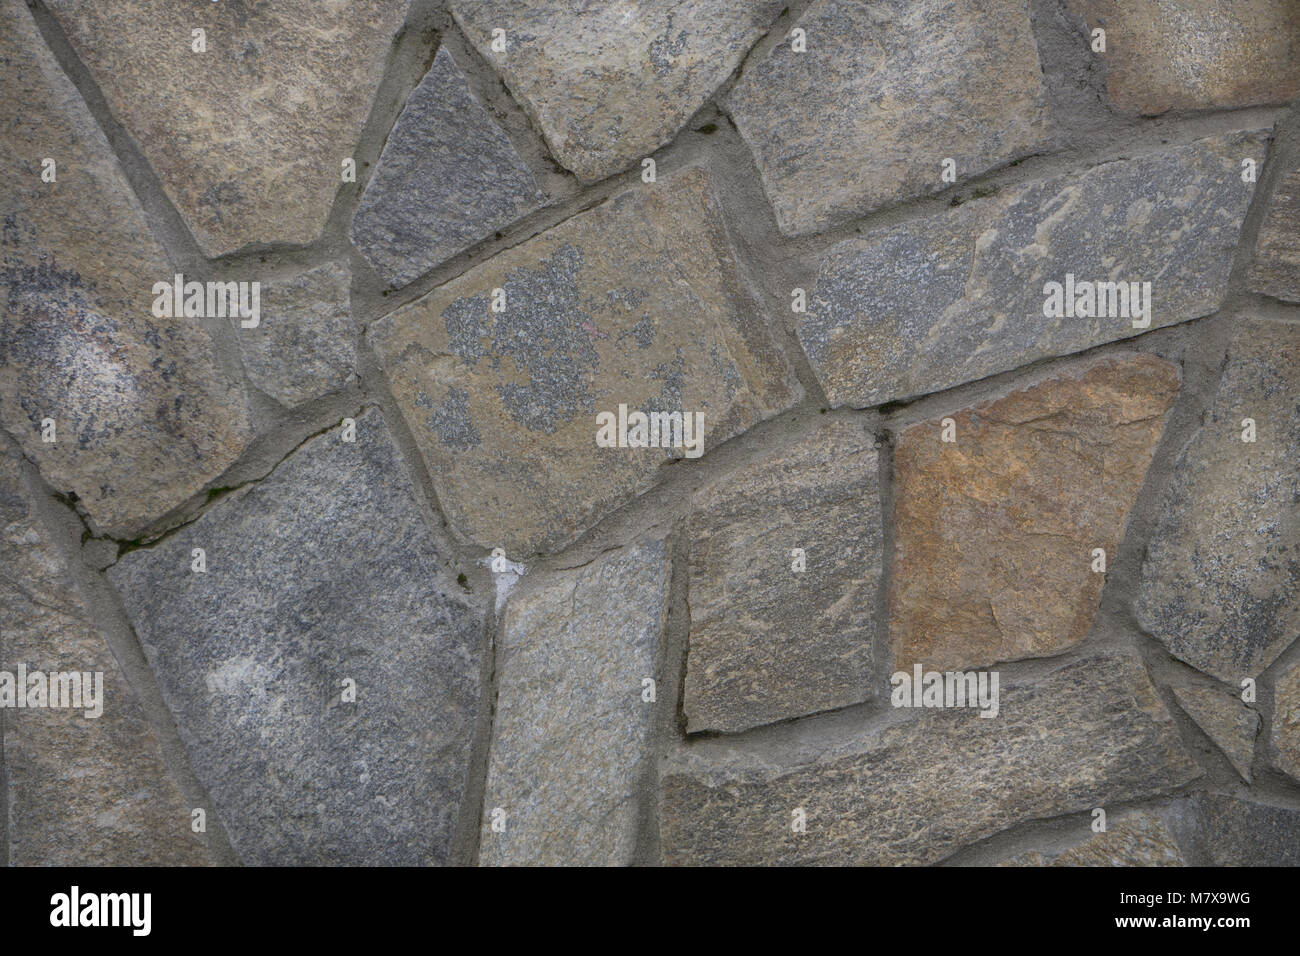 Stone wall texture,white stones in the park. Decorative background of stones, the texture of pebbles in different - Stock Image